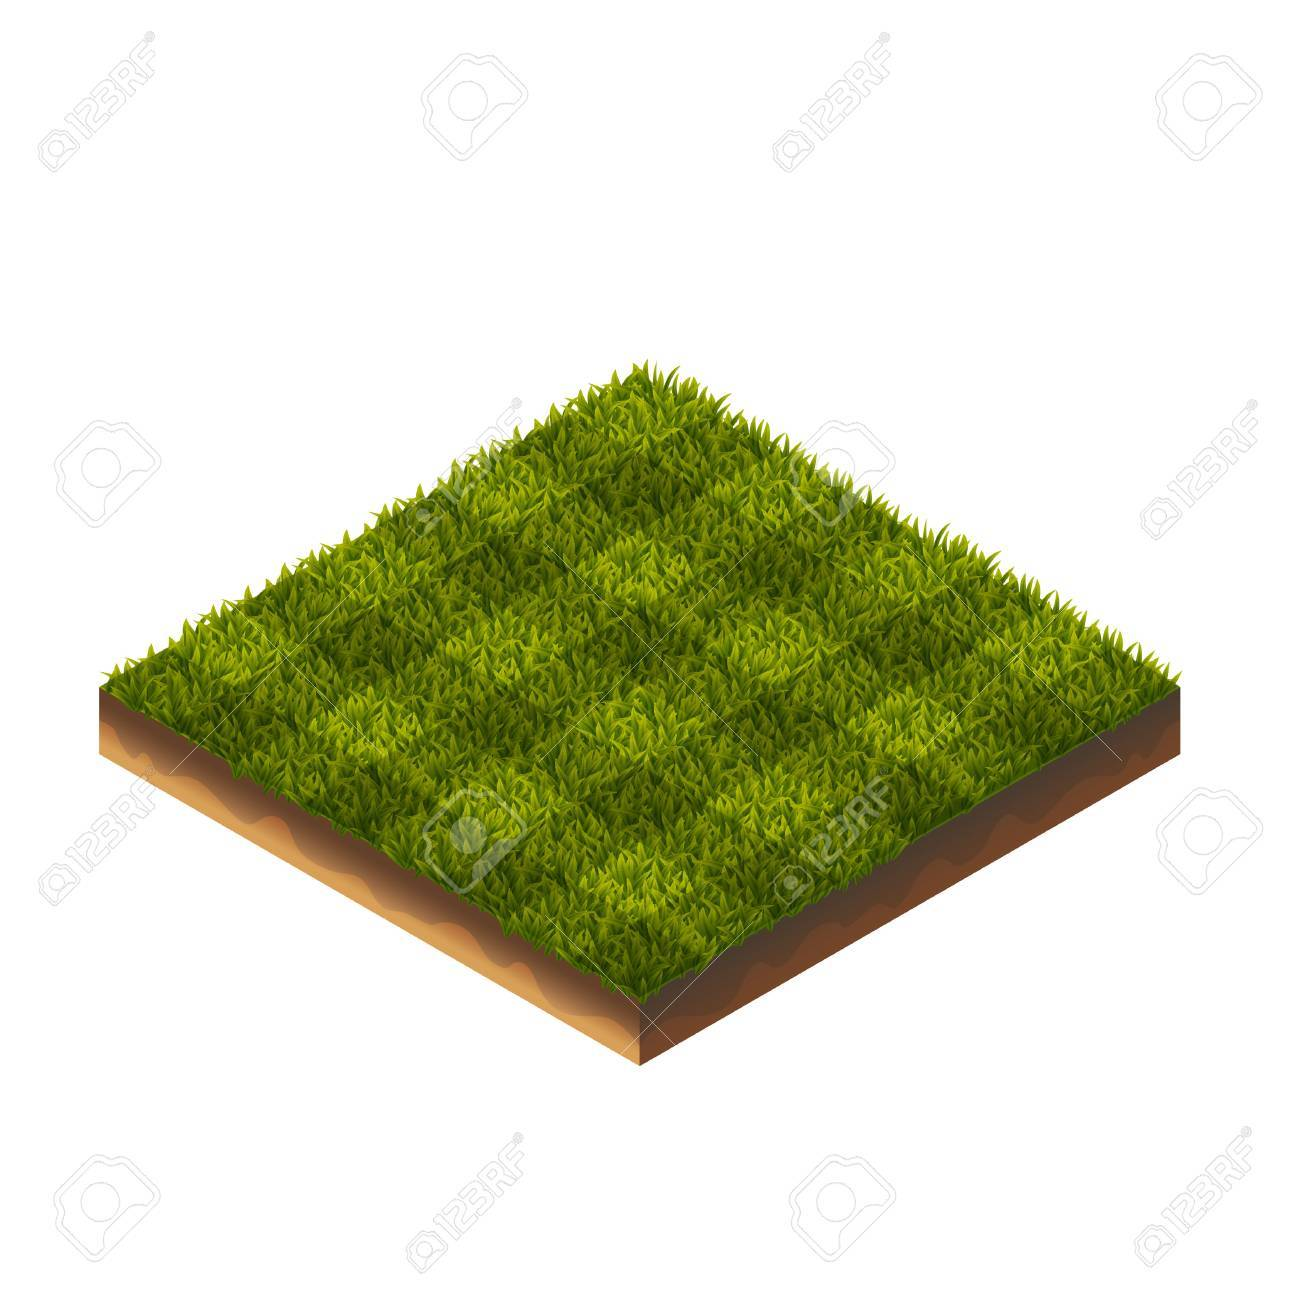 Isometric Vector Illustration Of Soccer Field Green Grass For Web, Print, Mobile and GUI - 56302211